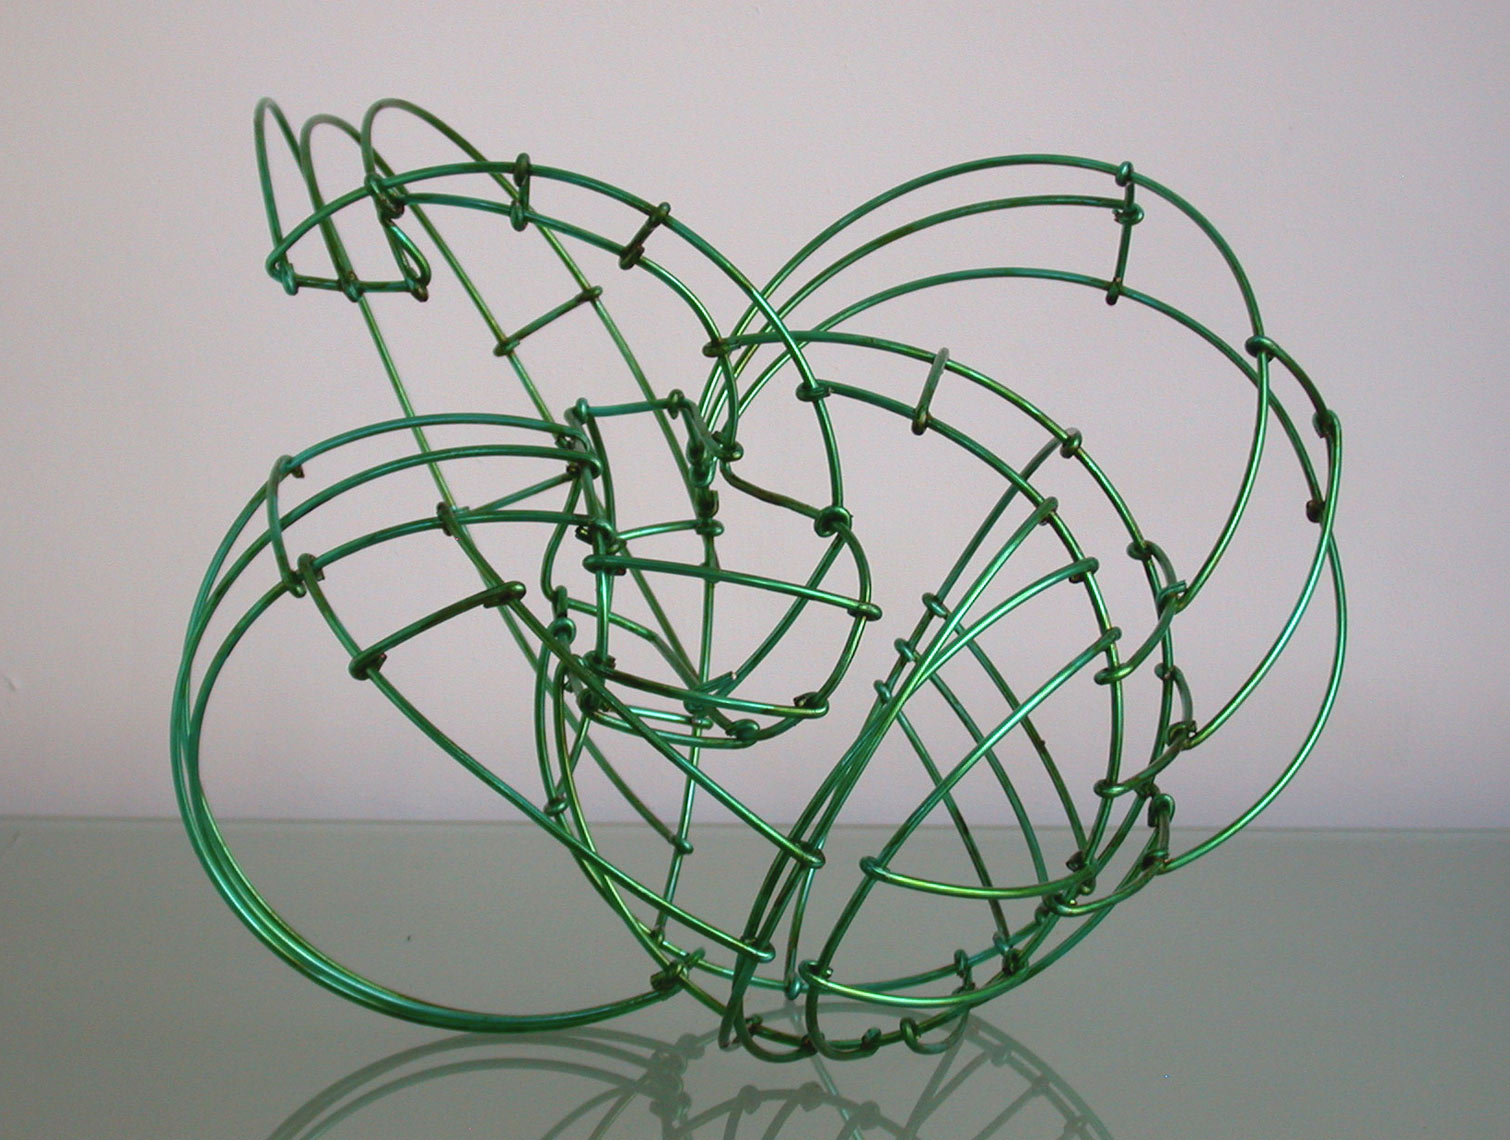 Green-wire-study by Peter Diepenbrock